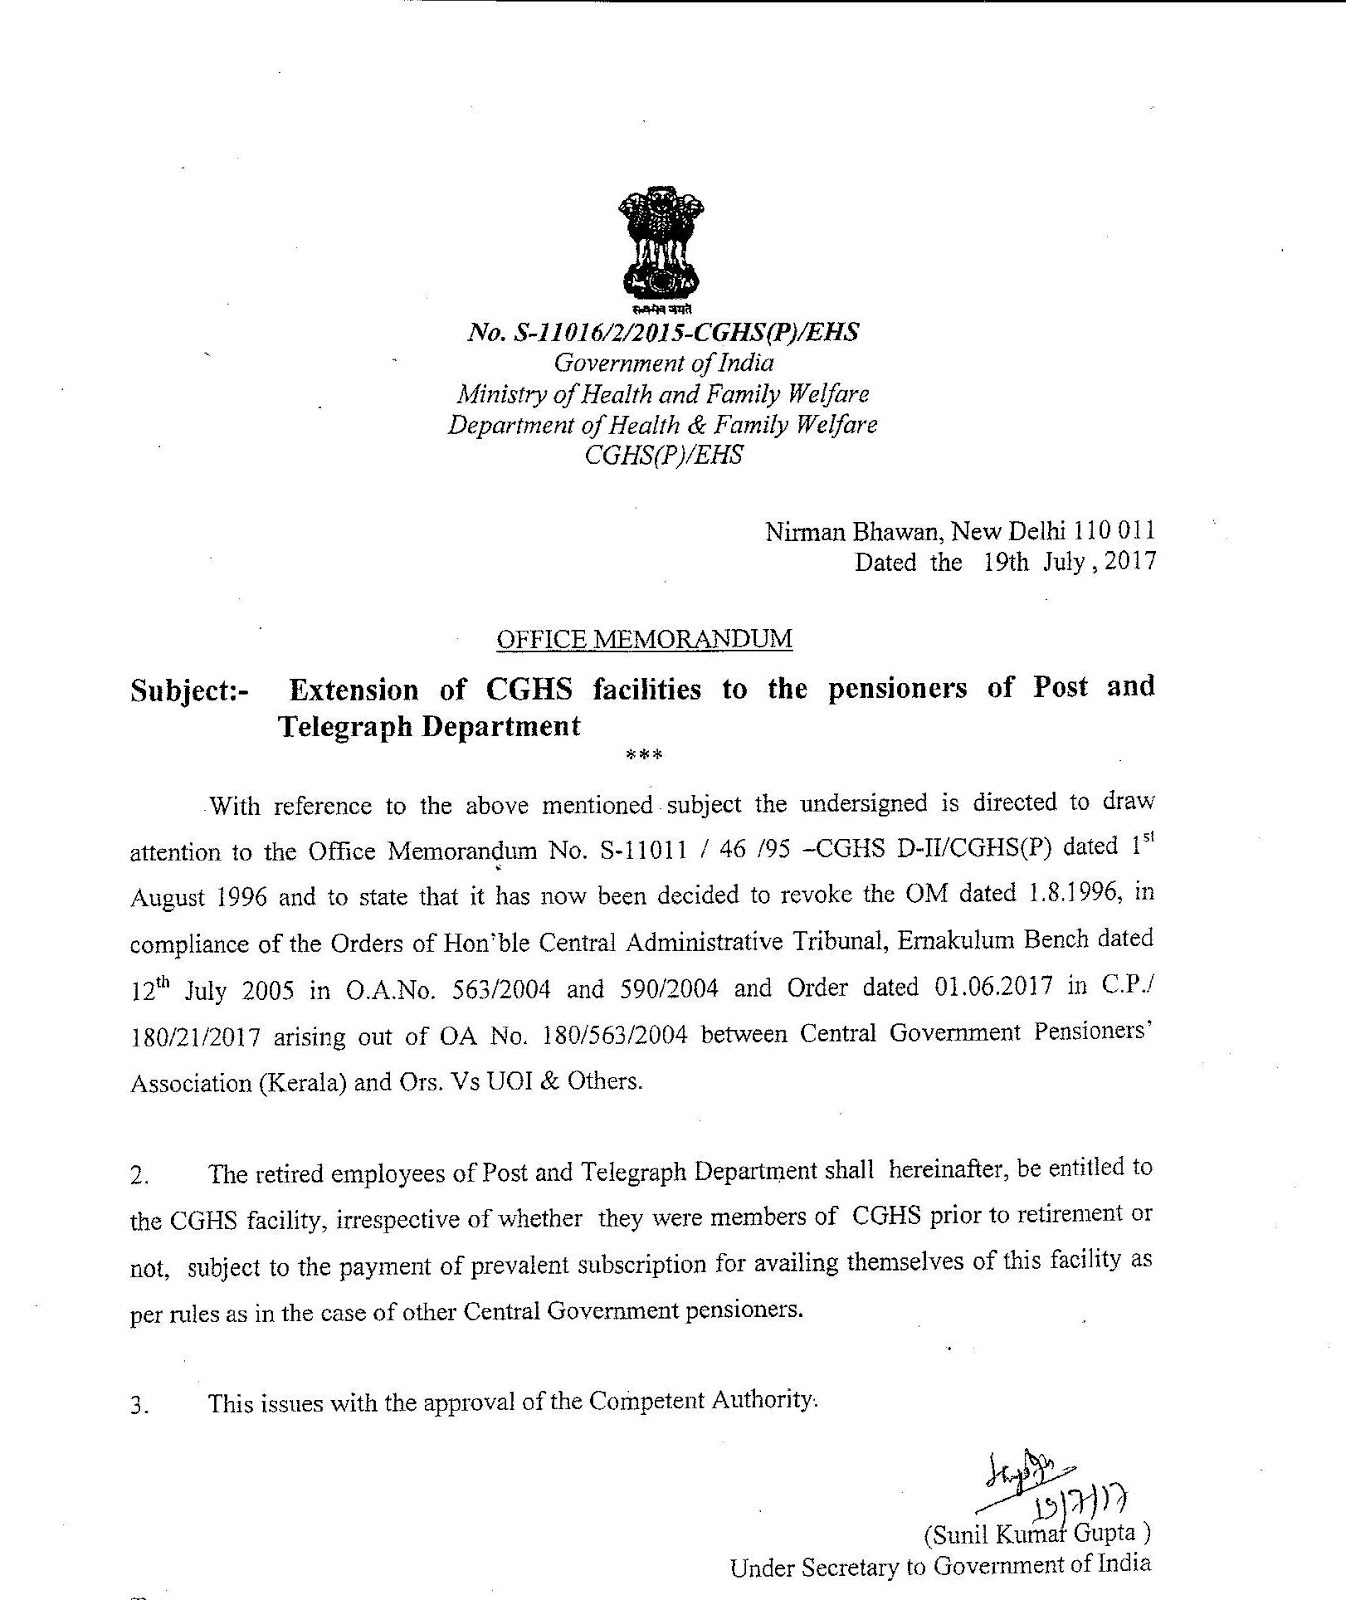 Extension of CGHS Facilities to Pensioners and Postal and Telegraph Department